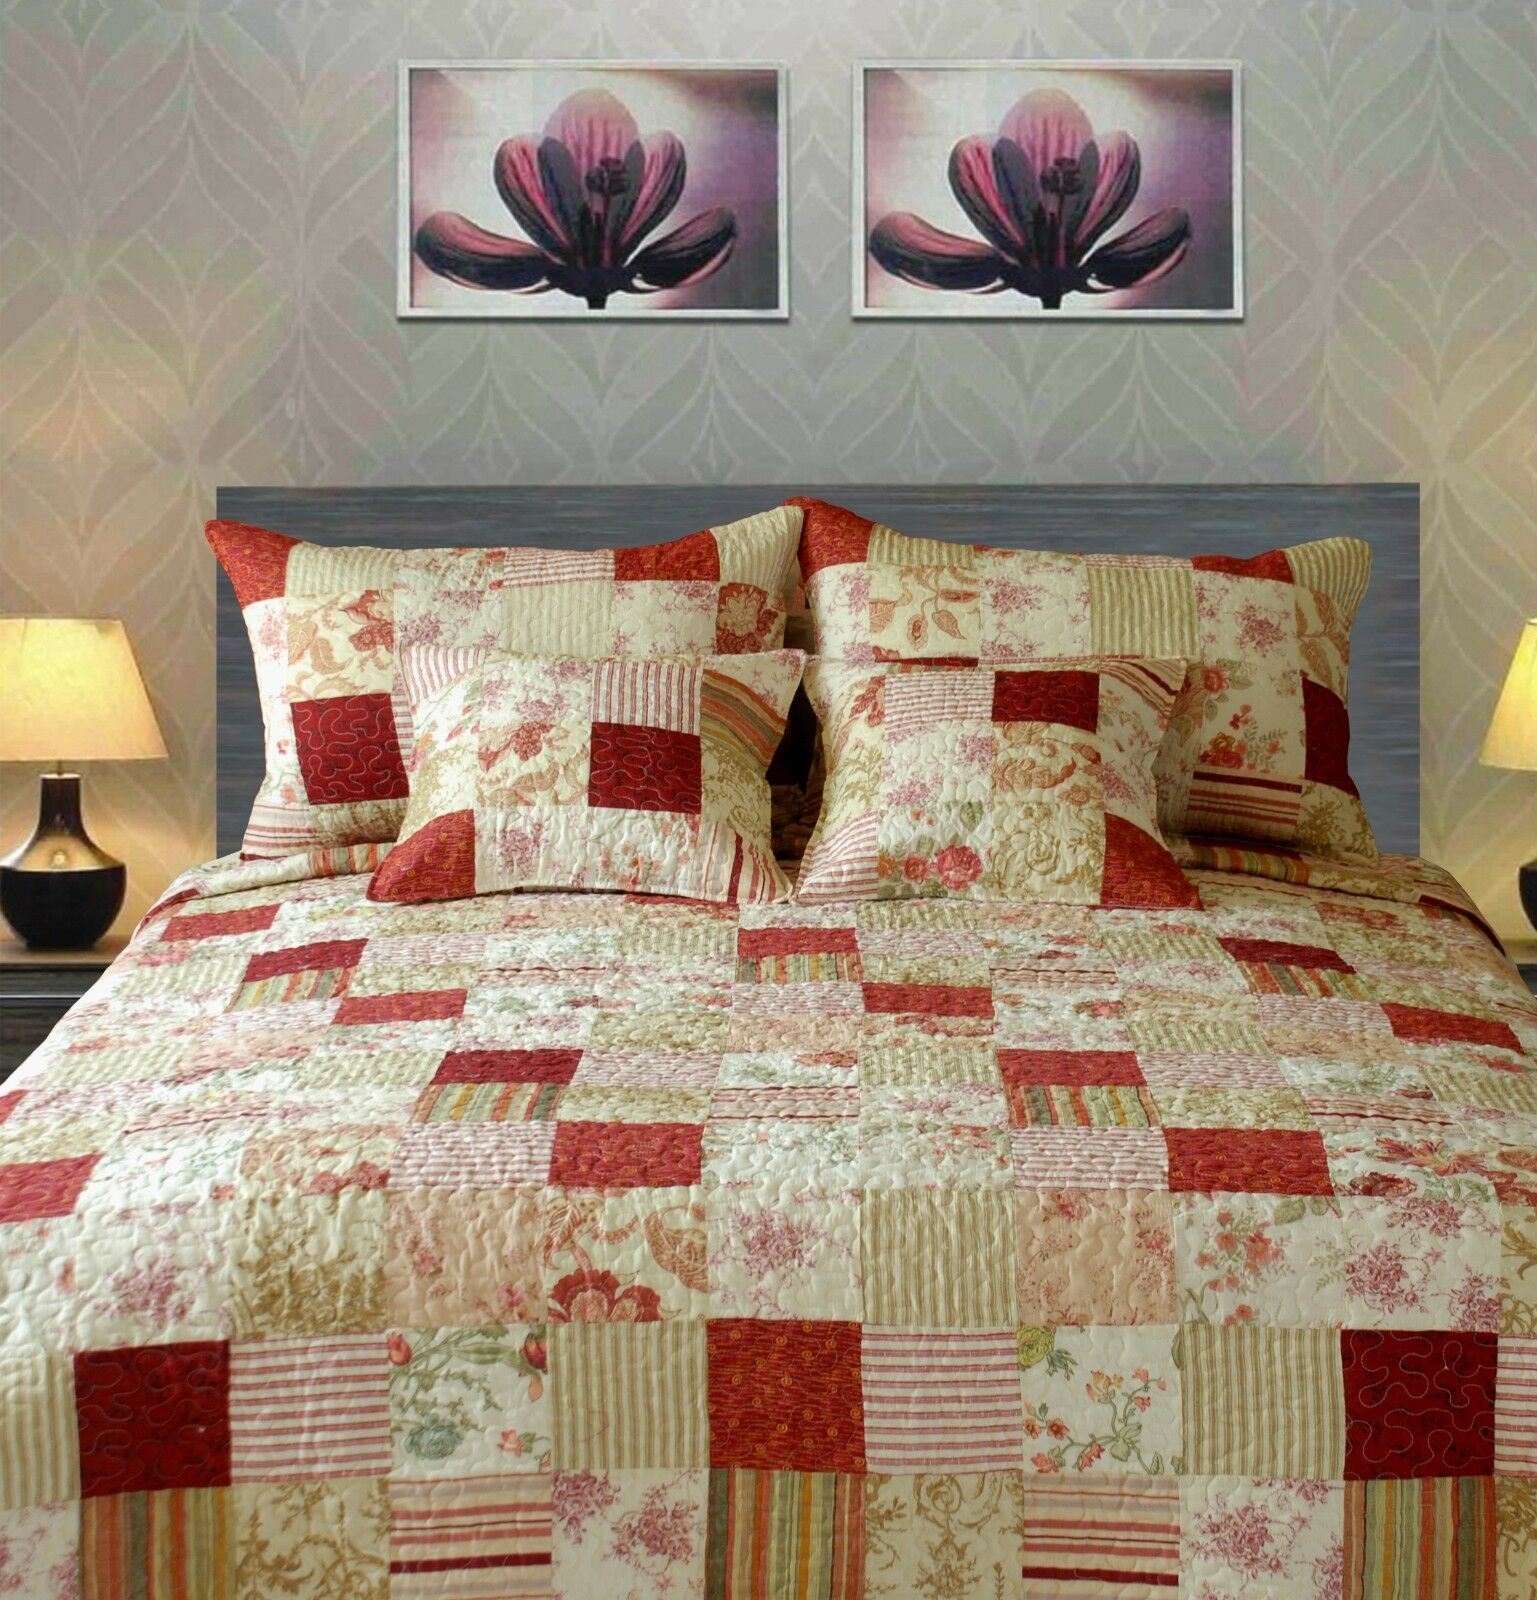 Tache Cotton Patchwork Strawberry Field Red Pink Reversible Bedspread Quilt Set